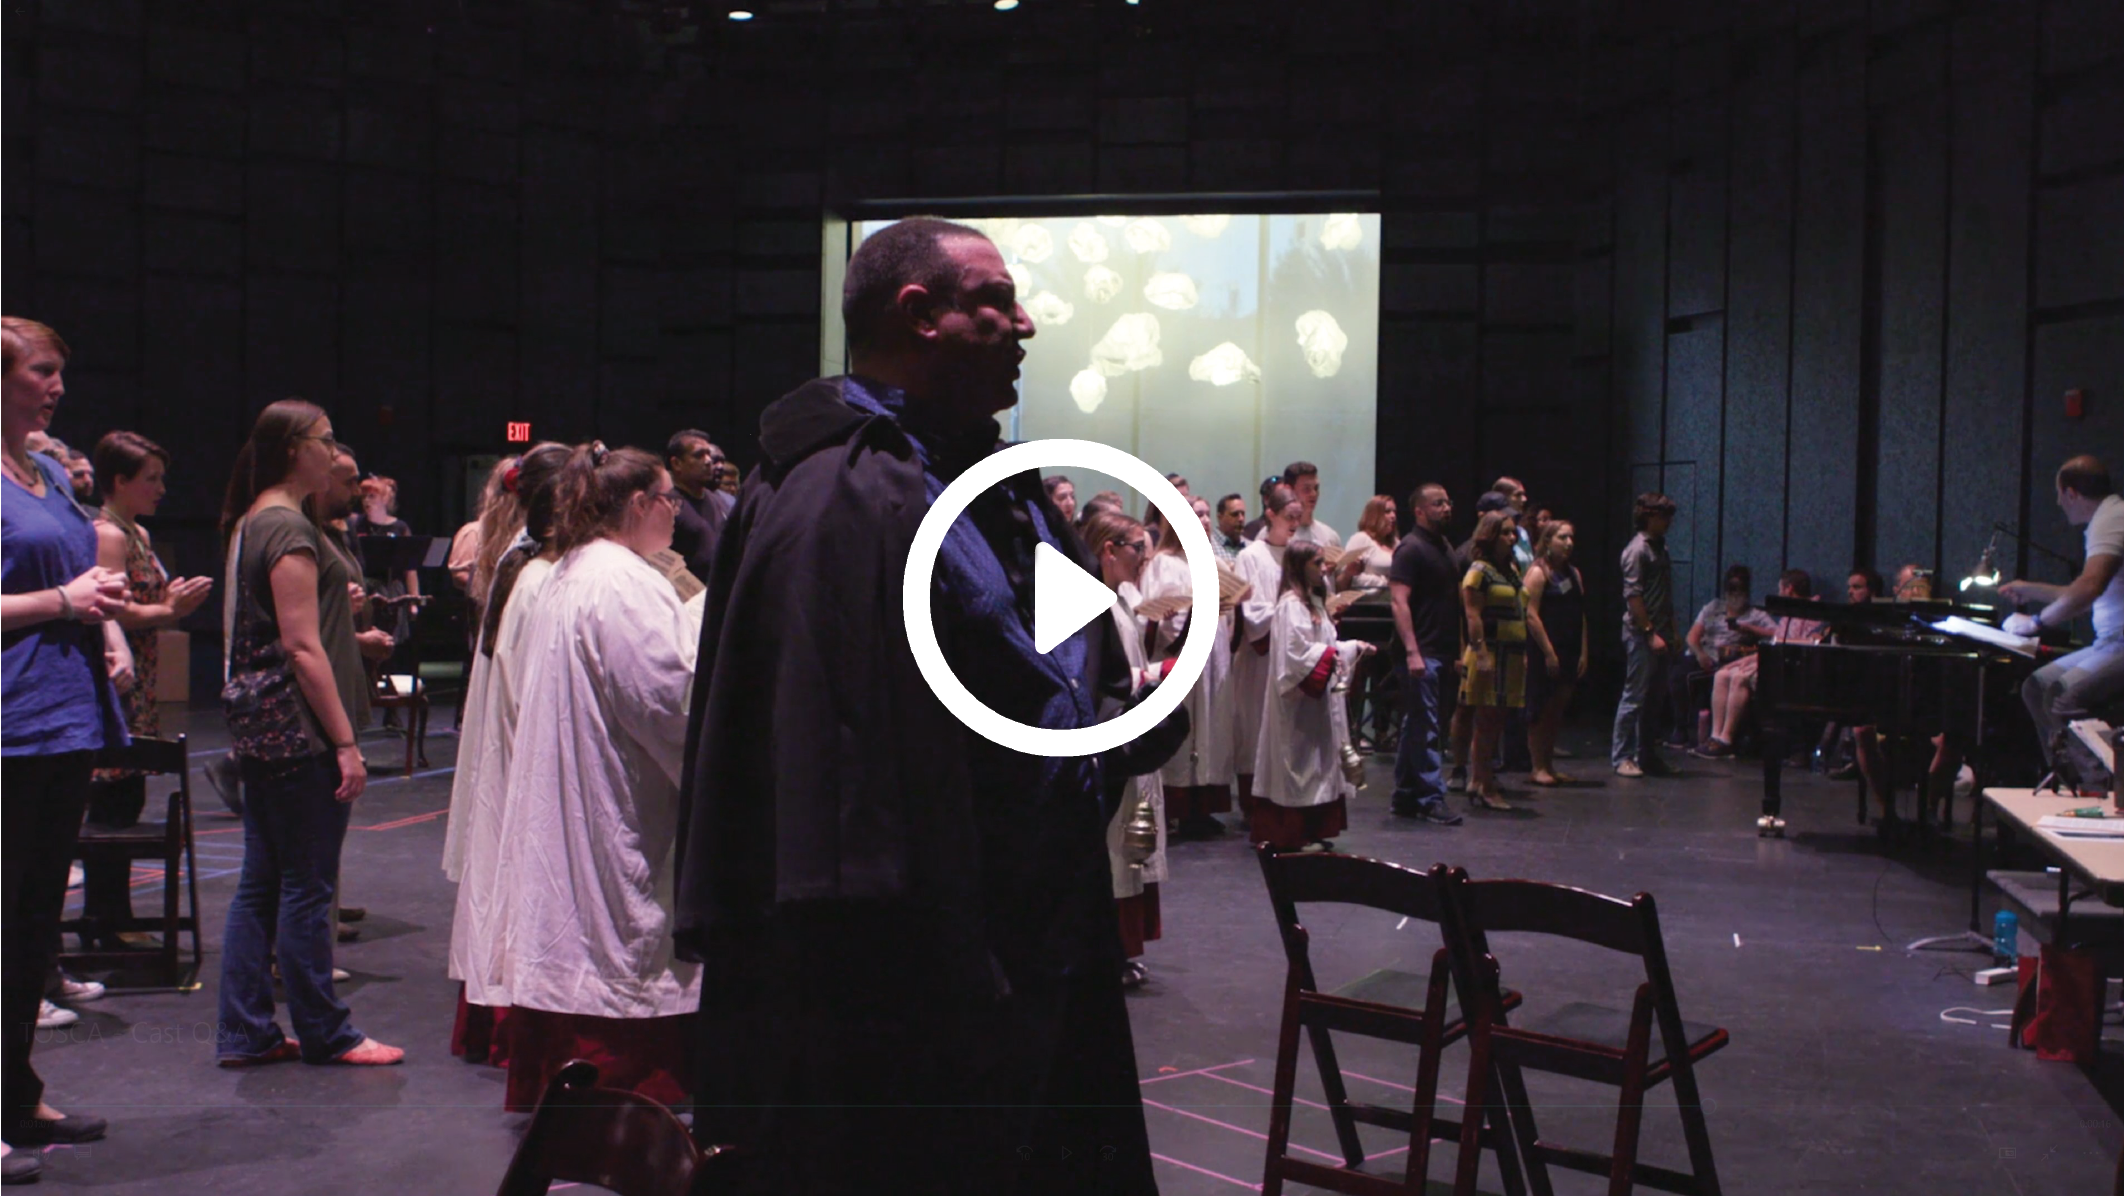 Behind the Scenes - What to Expect - Hear what the cast has to say about Tosca